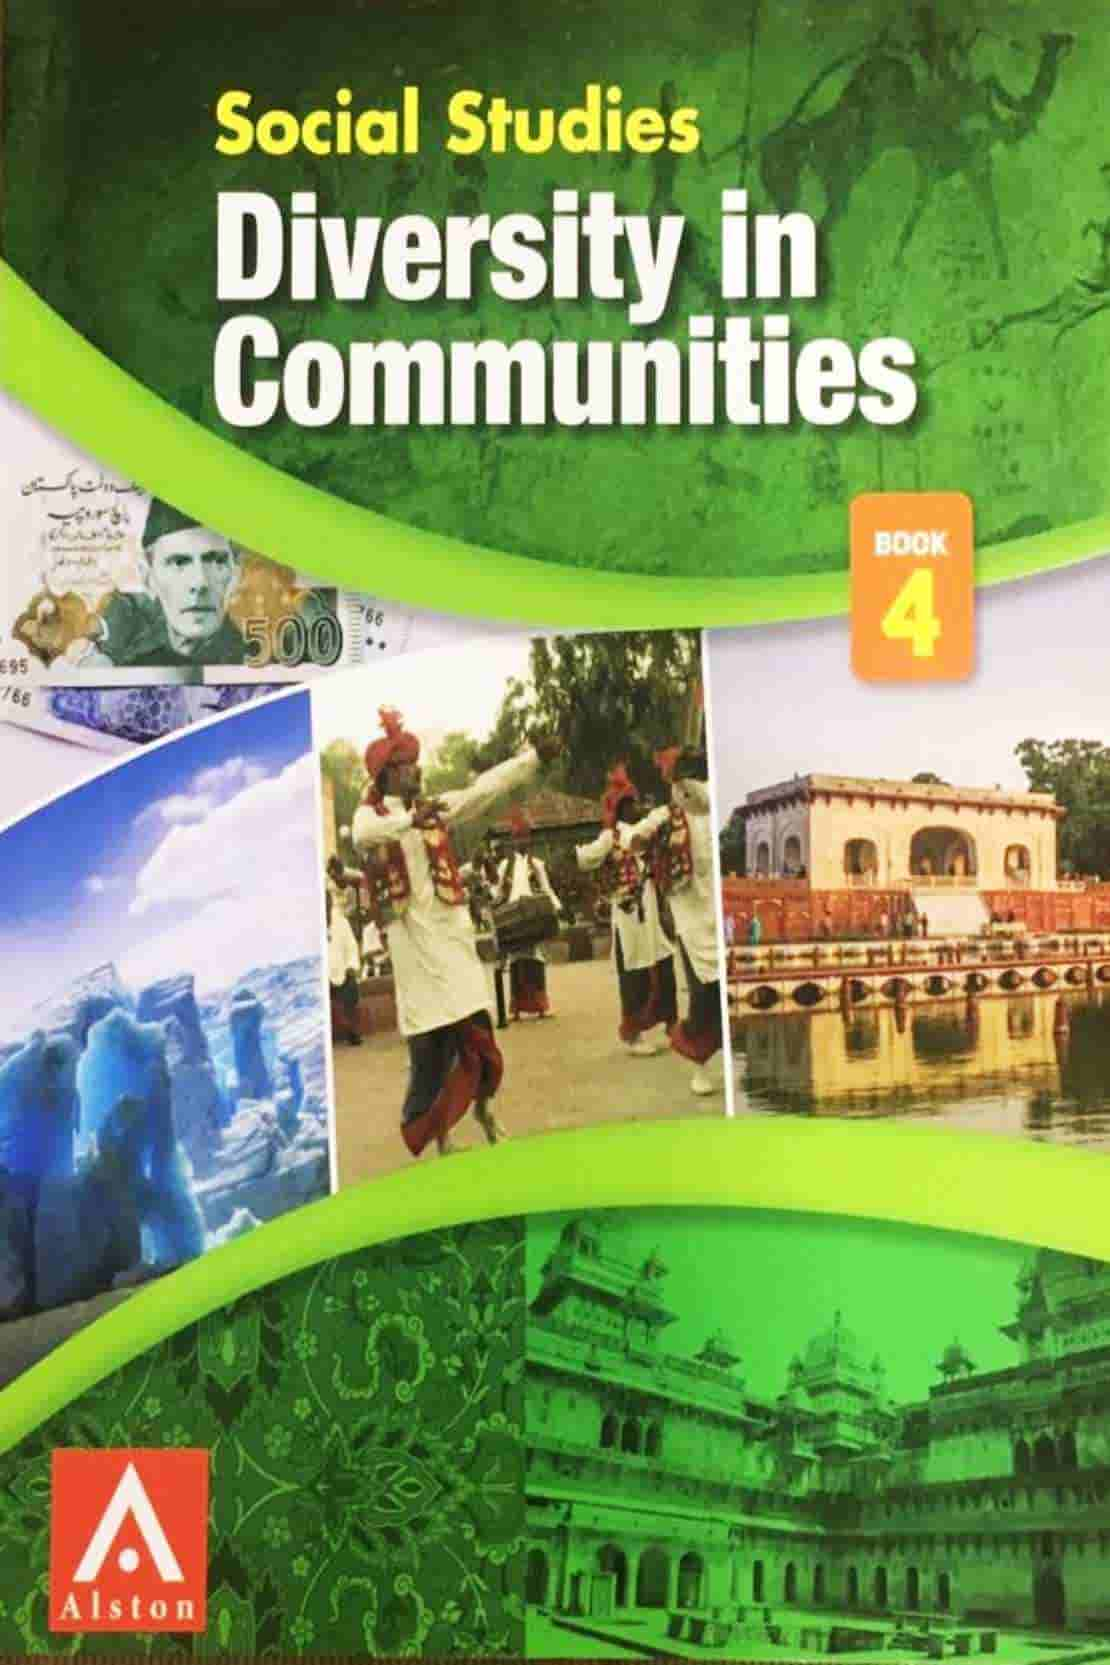 DIVERSITY IN COMMUNITIES STUDENT BOOK 4 Class 4